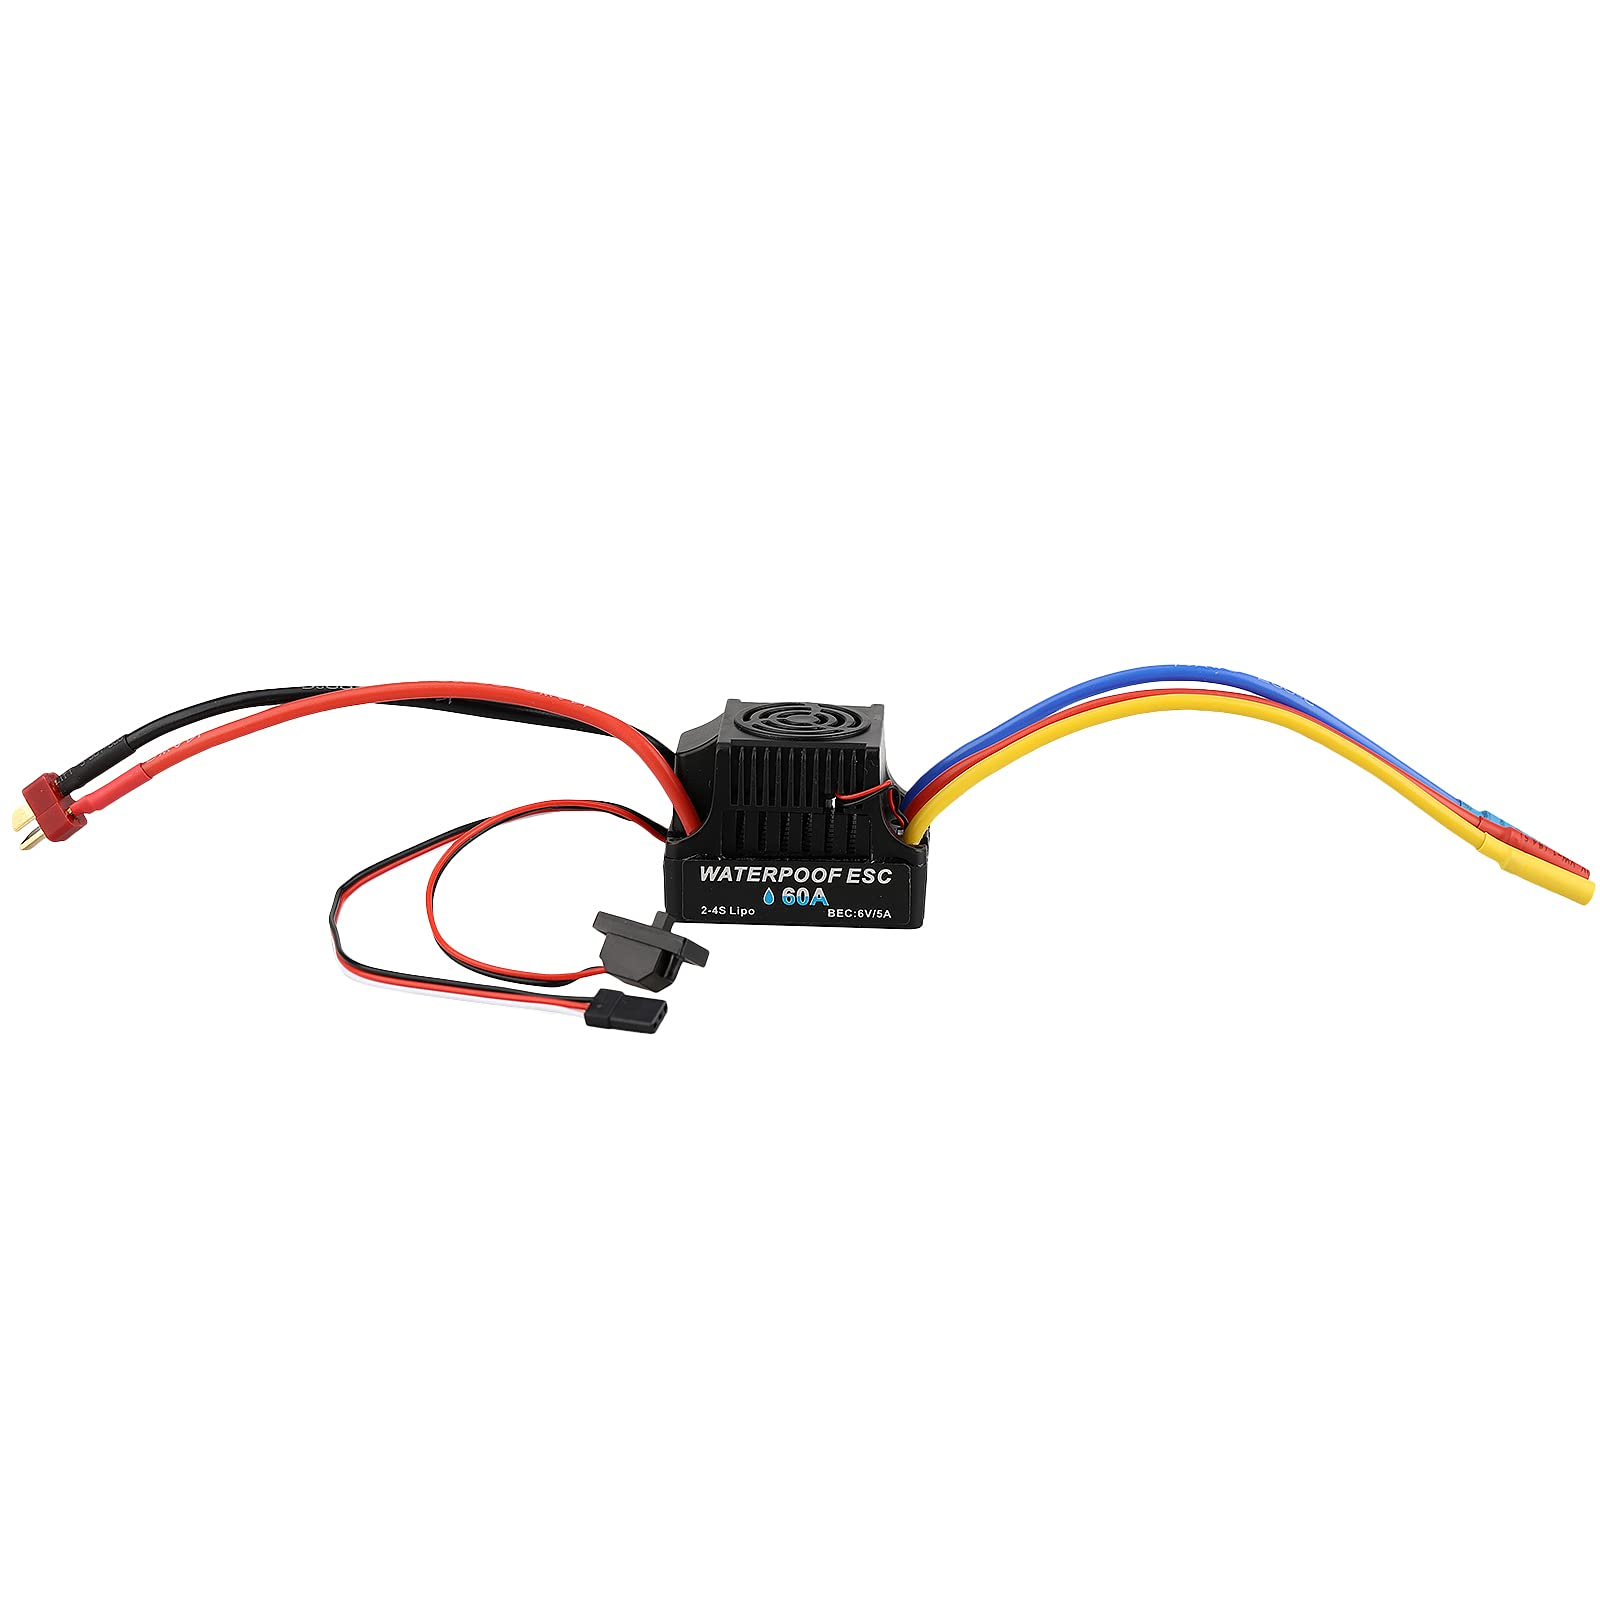 Shaluoman 60A Brushless ESC Electronic Speed Controller LONG